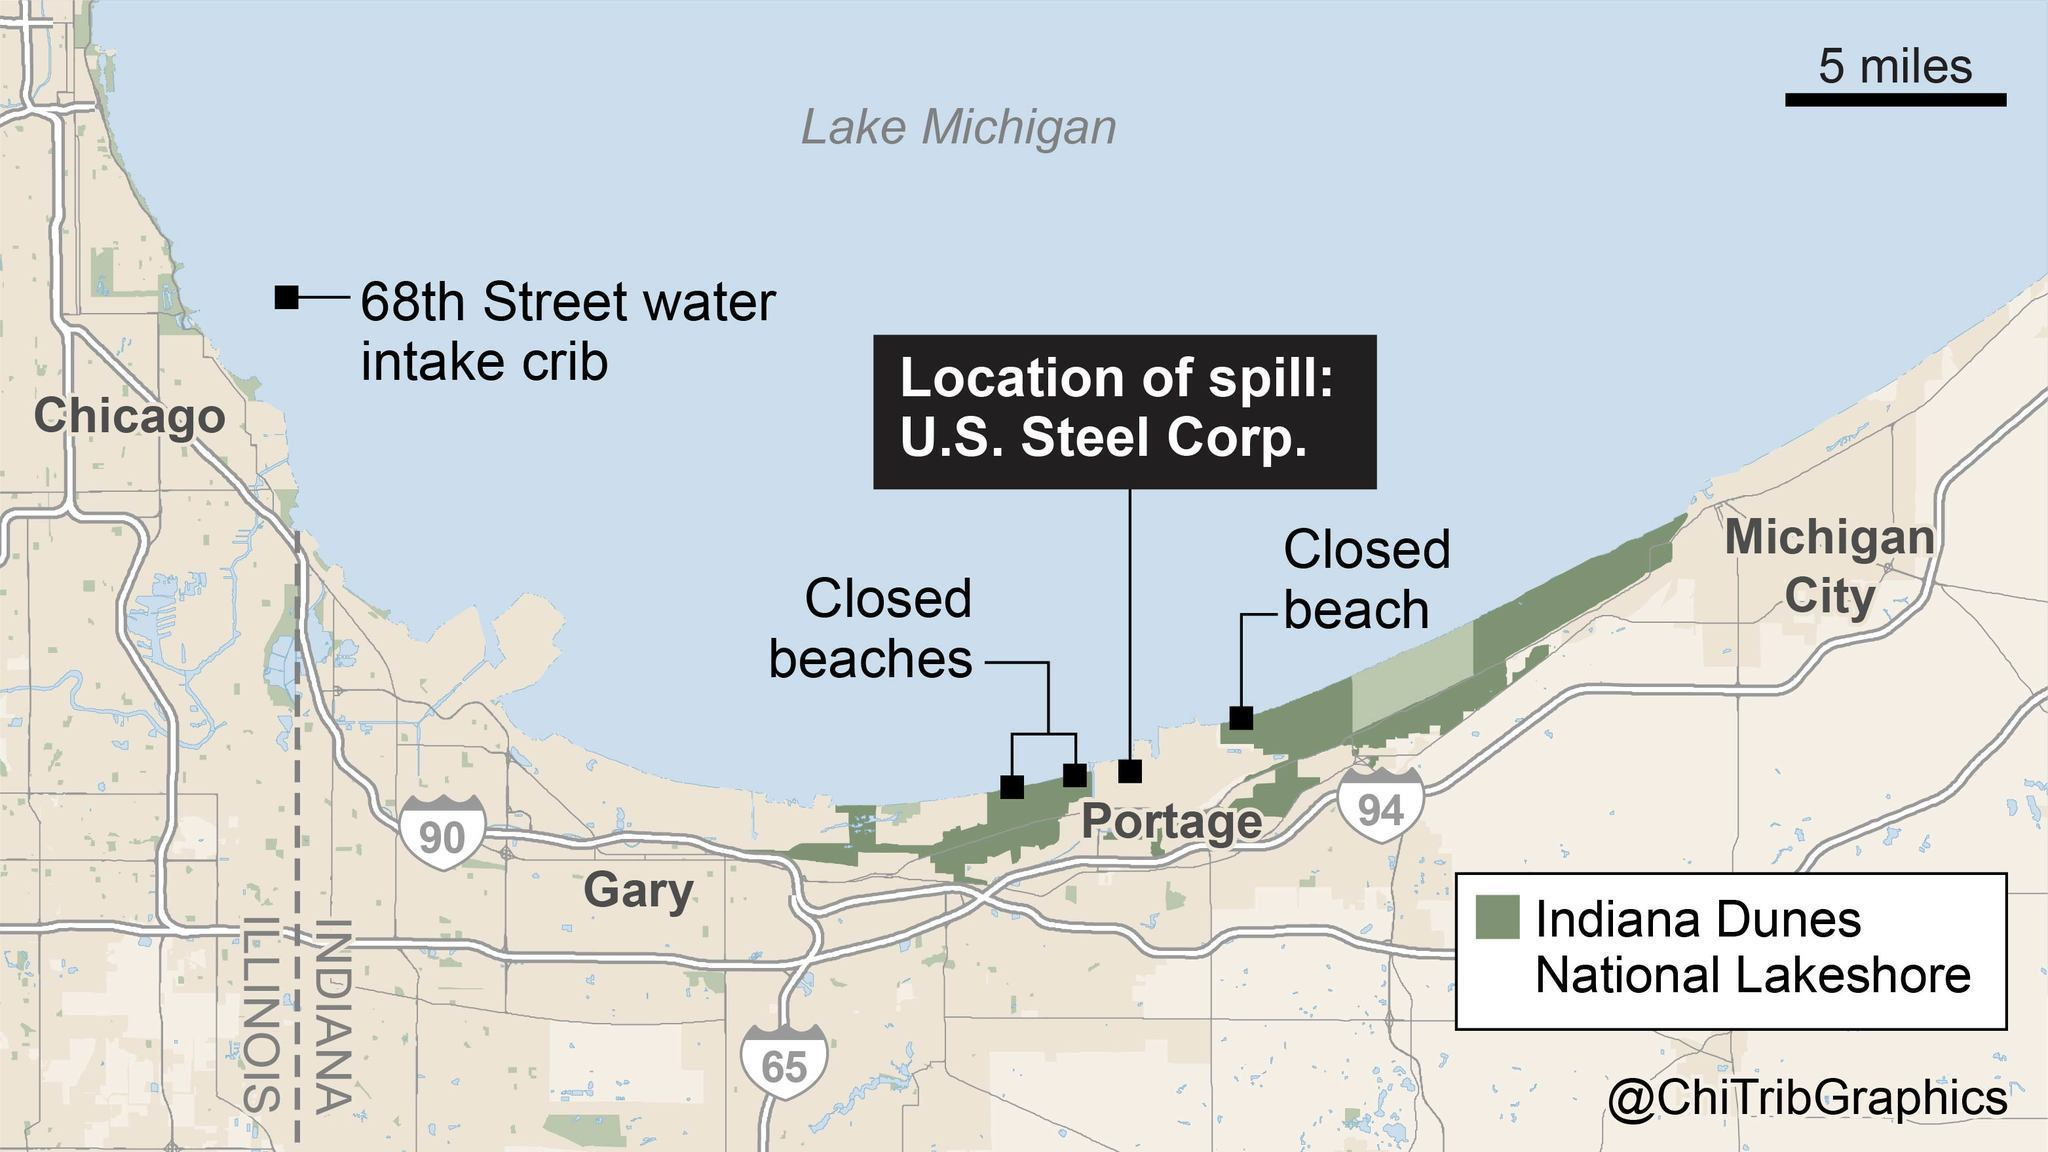 US Steel Chemical Spill Closes Beaches EPA Measuring - Chicago map lake michigan